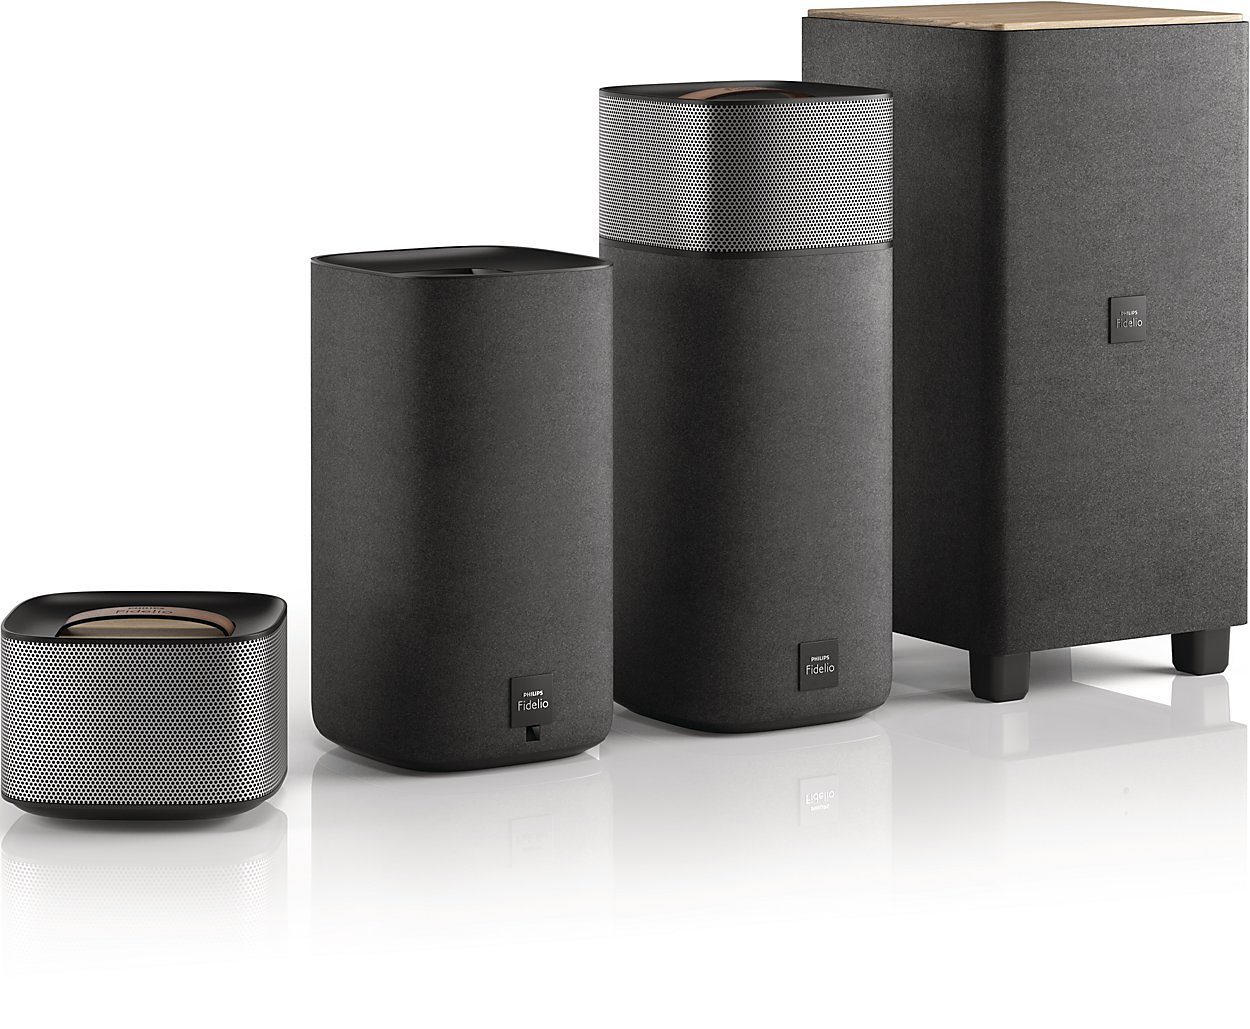 Philips Fidelio Surround-Sound für kabelloses Heimkino »E5 (CSS7235Y/12)«